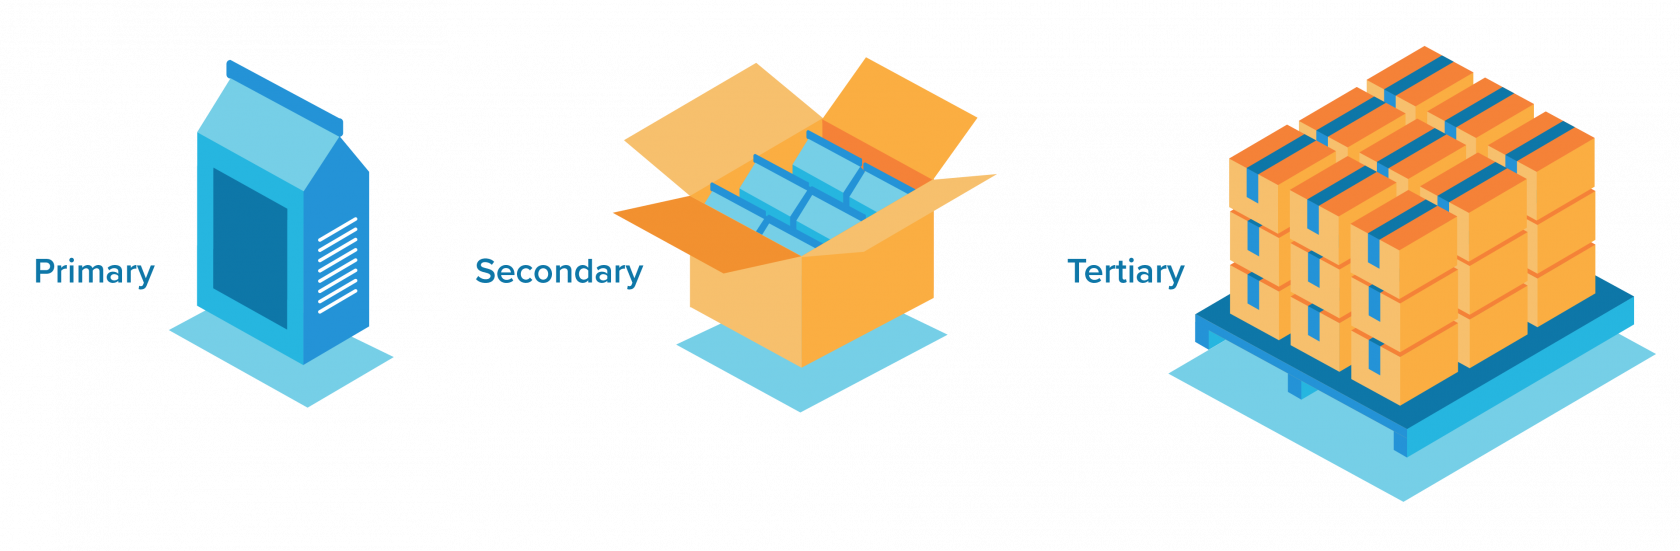 Examples of primary, secondary and tertiary packaging